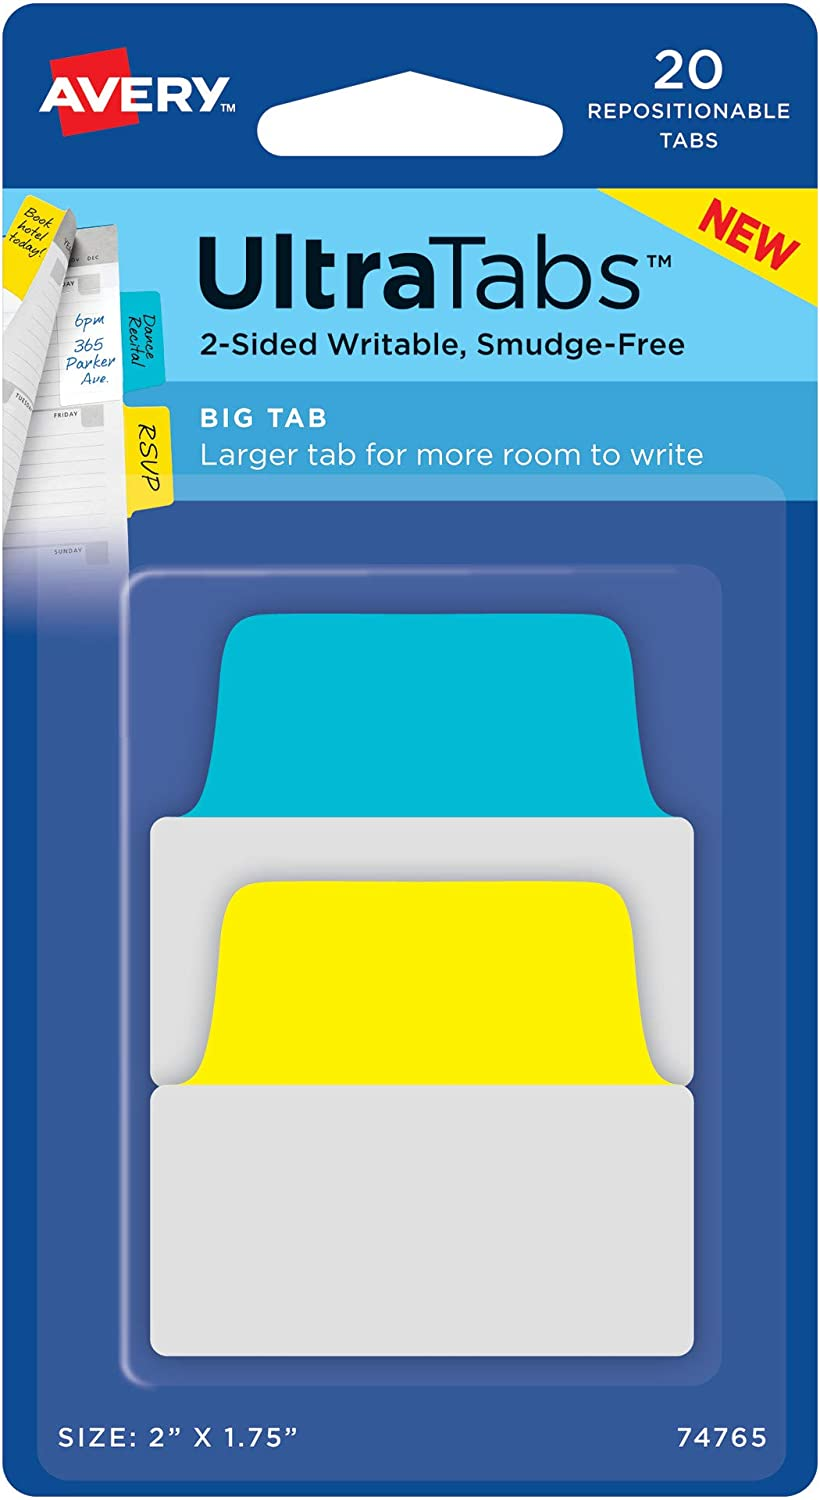 """Avery Big Ultra Tabs, 2"""" x 1.75"""", 2-Side Writable, Yellow/Blue, 20 Repositionable Tabs (74765)"""